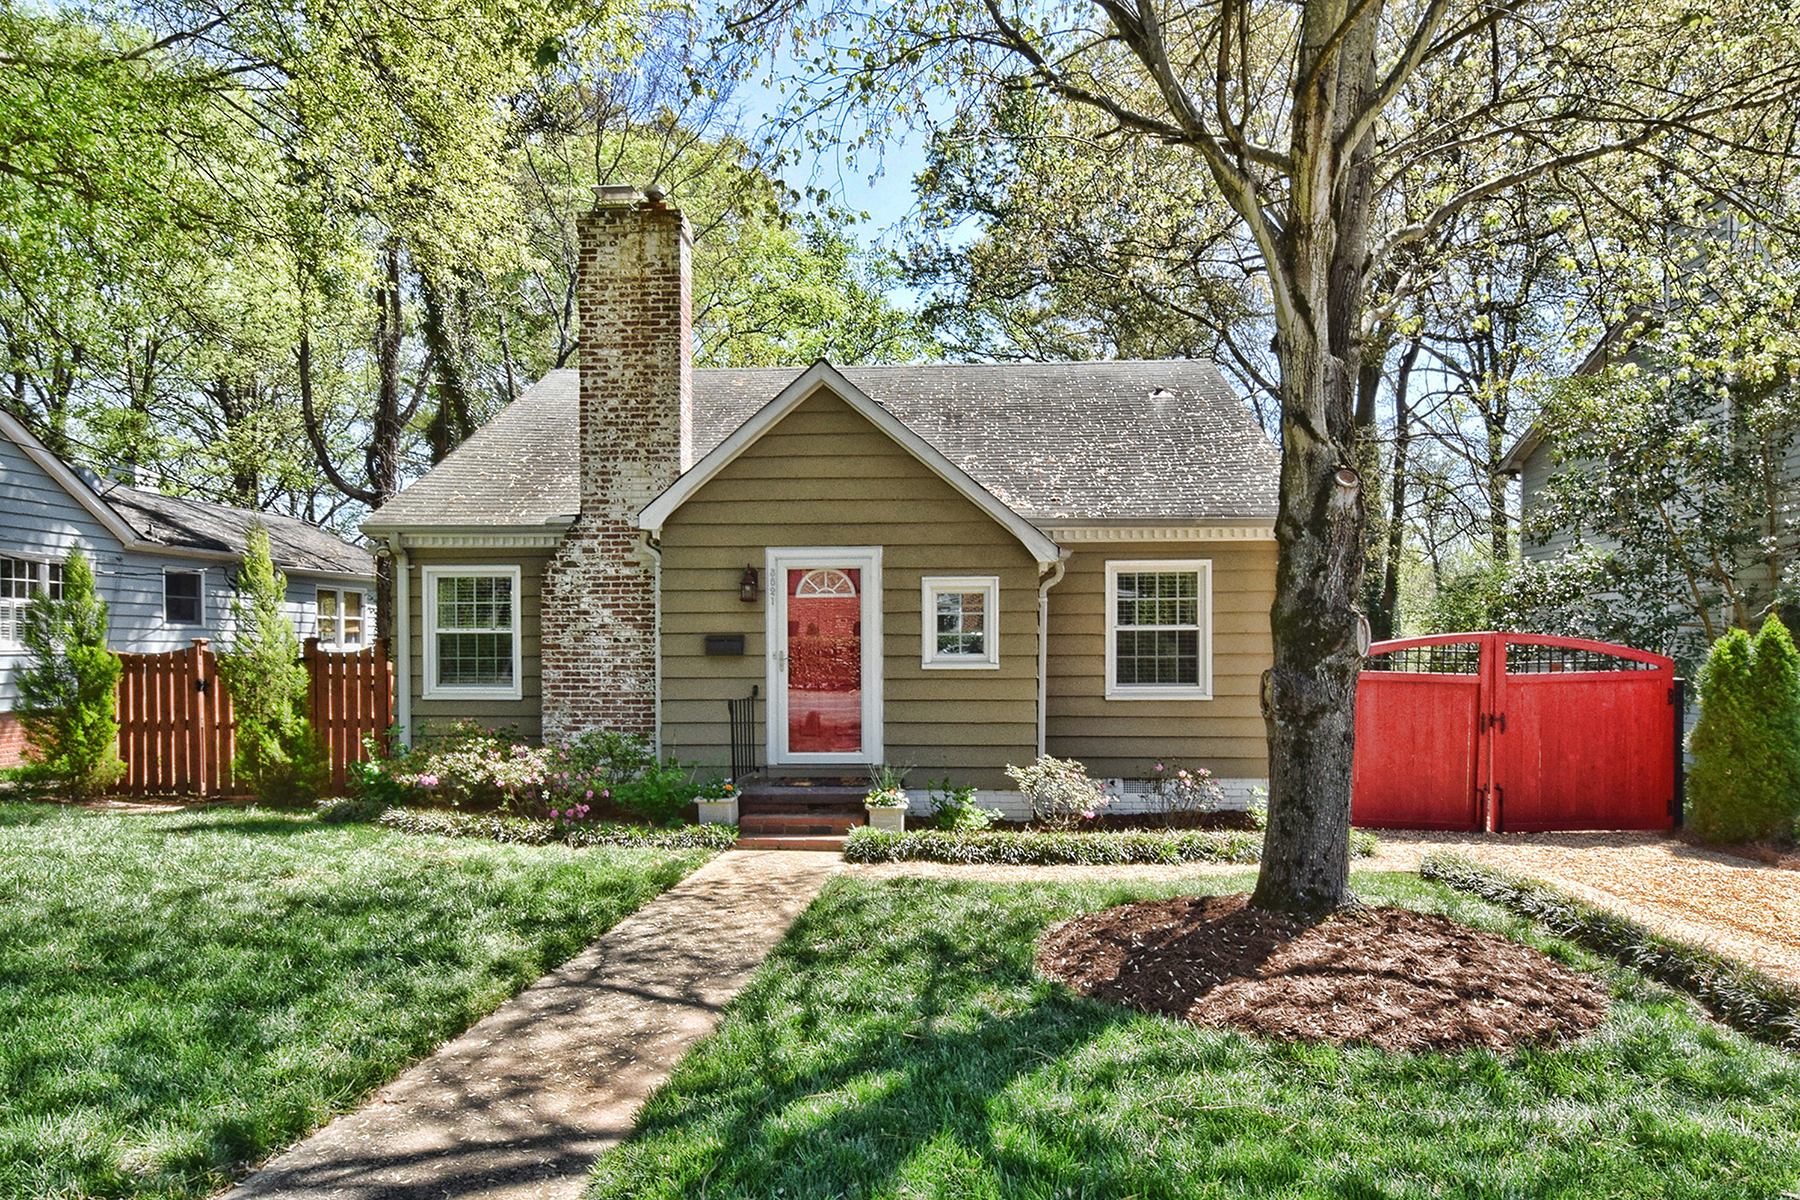 Single Family Home for Sale at MYERS PARK 3821 Selwyn Ave Myers Park, Charlotte, North Carolina, 28209 United States